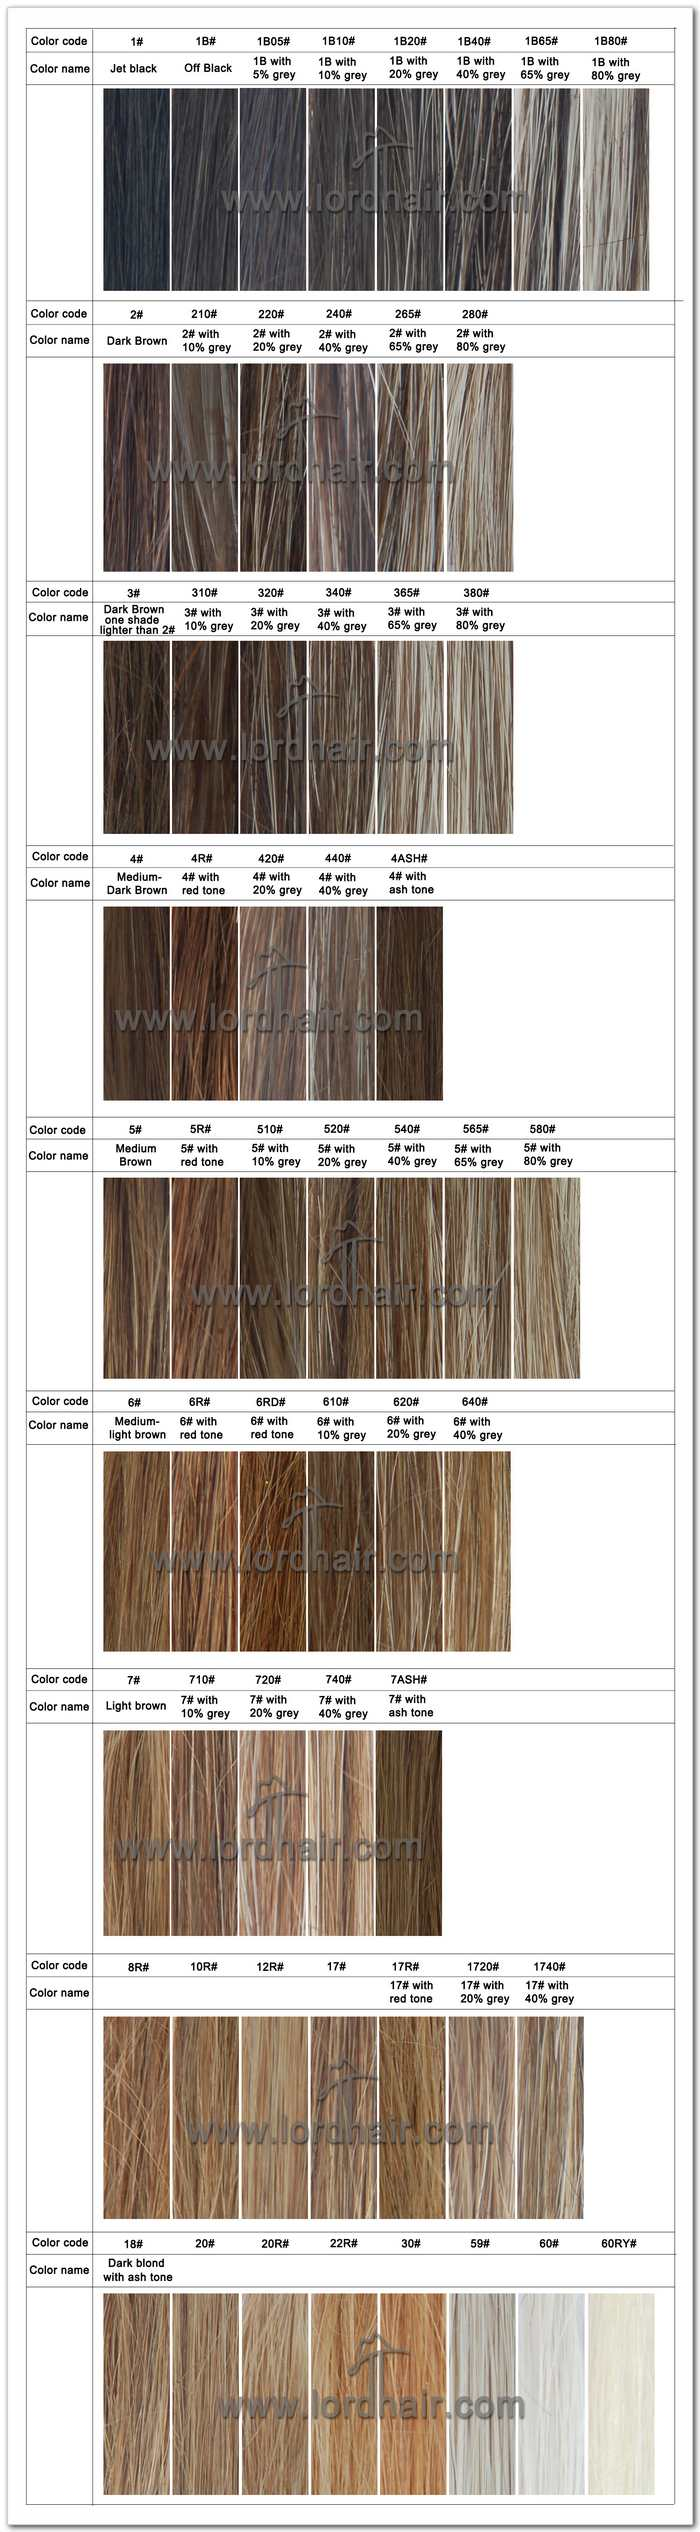 Hair Color Options Of Hair Systems Lordhair